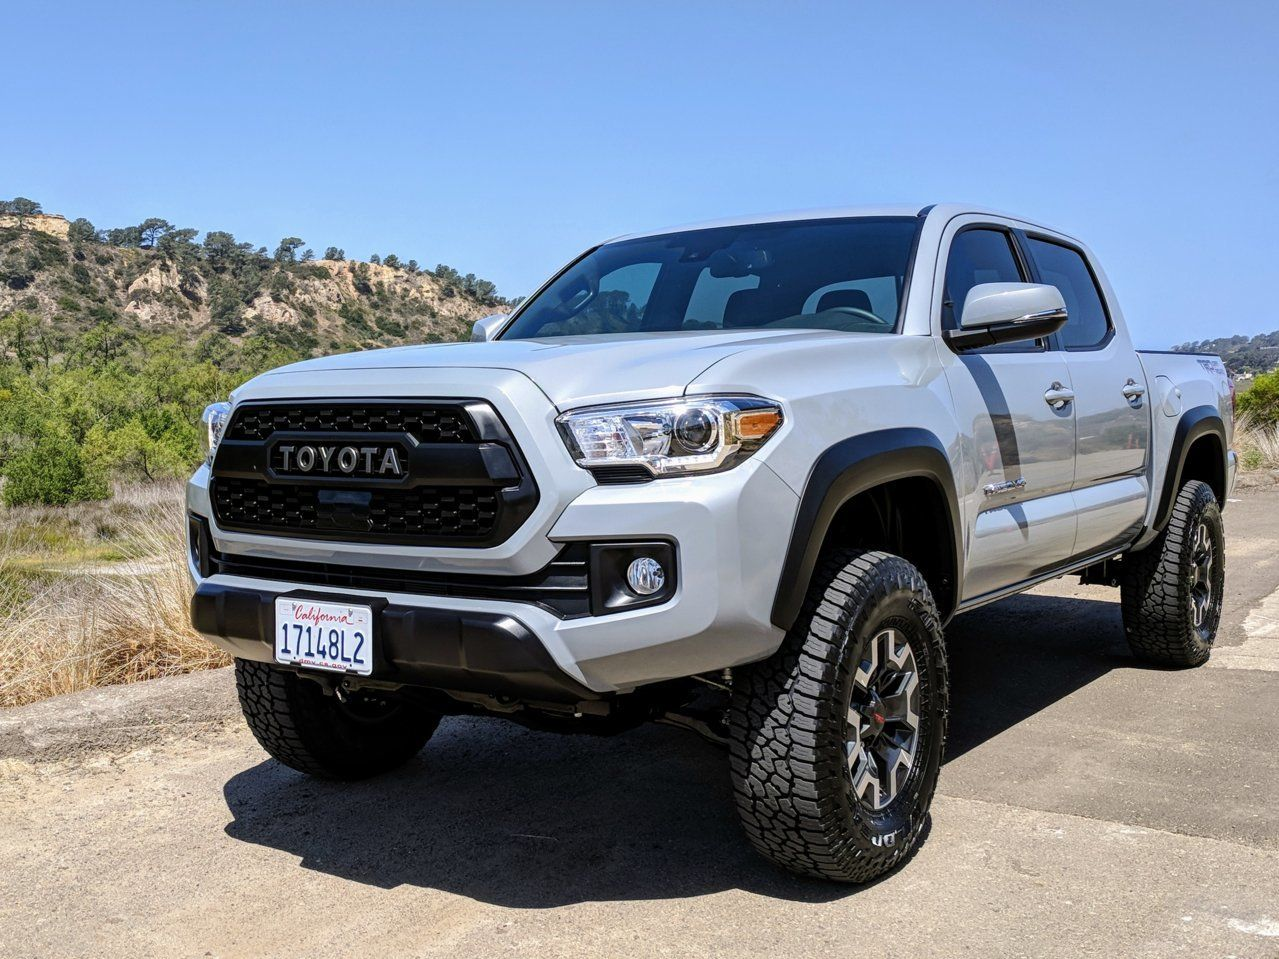 2018 Toyota Sequoia Price, Release Date, Review Toyota